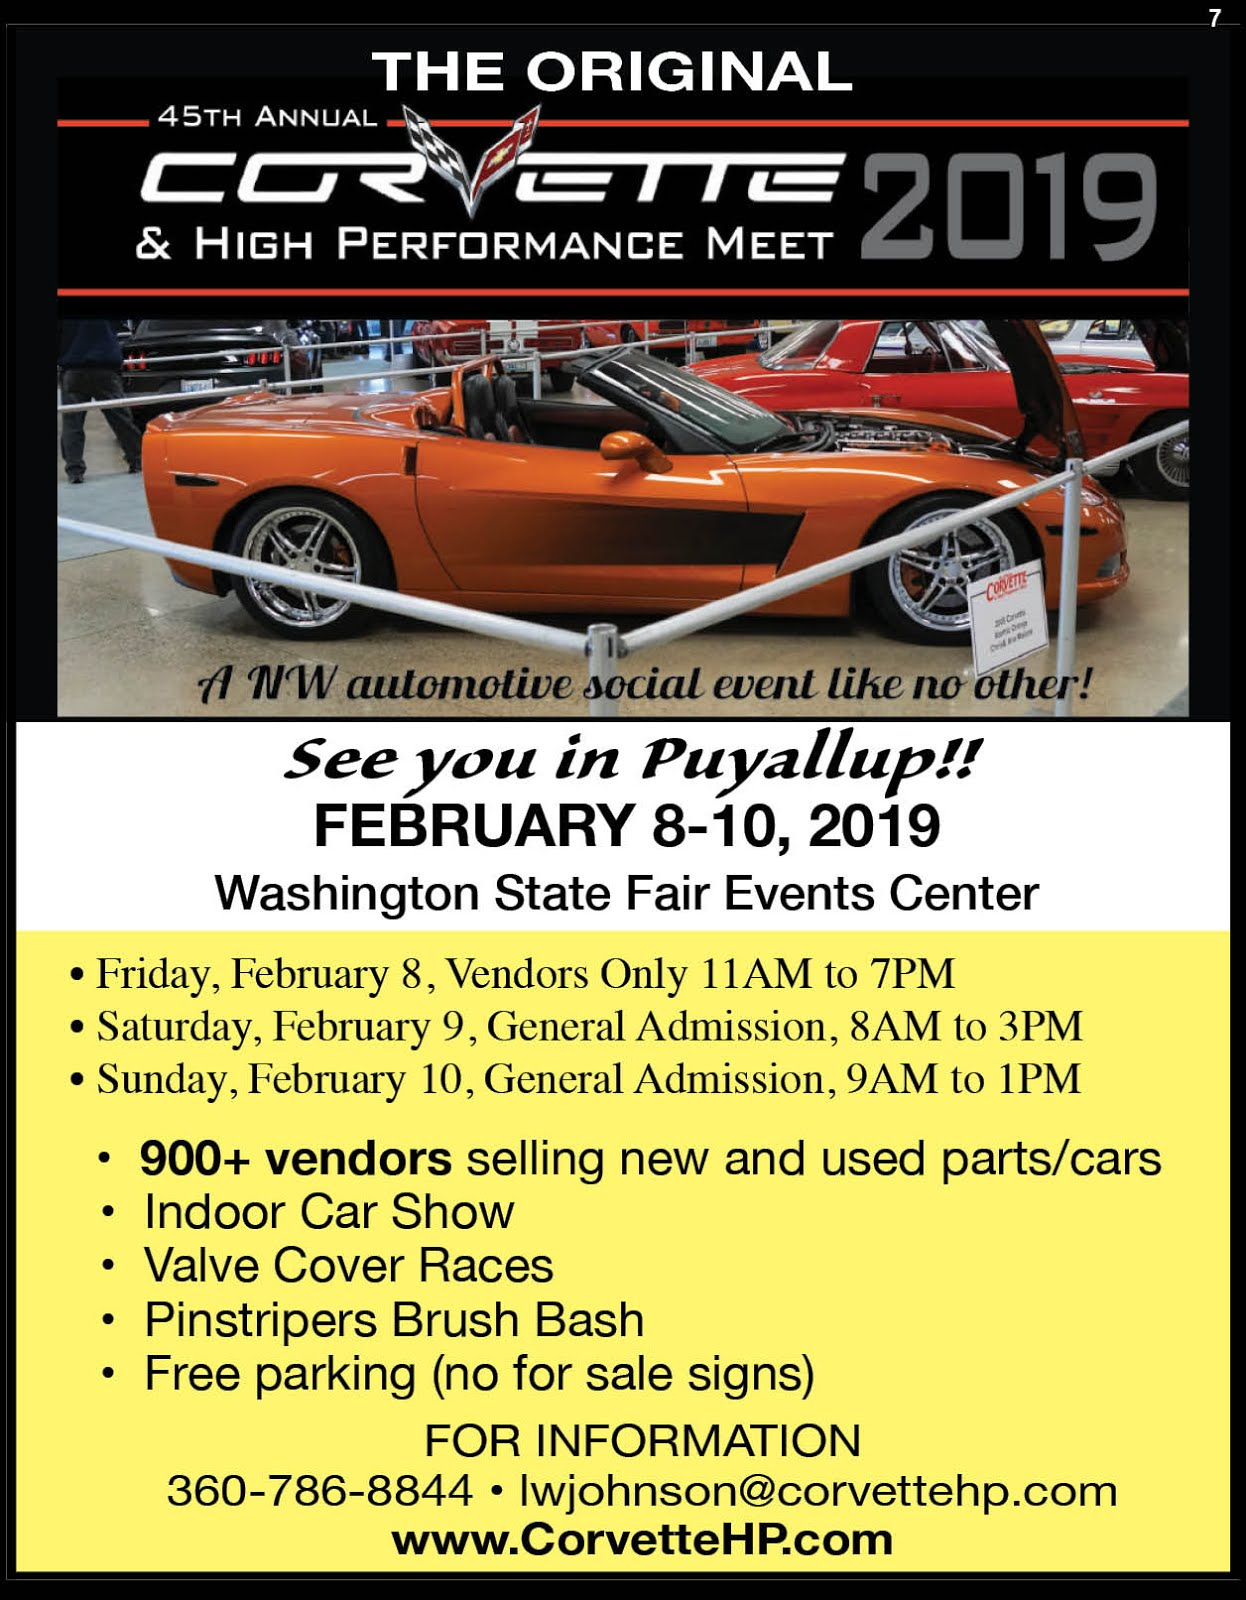 Corvette & High Performance Meet Info